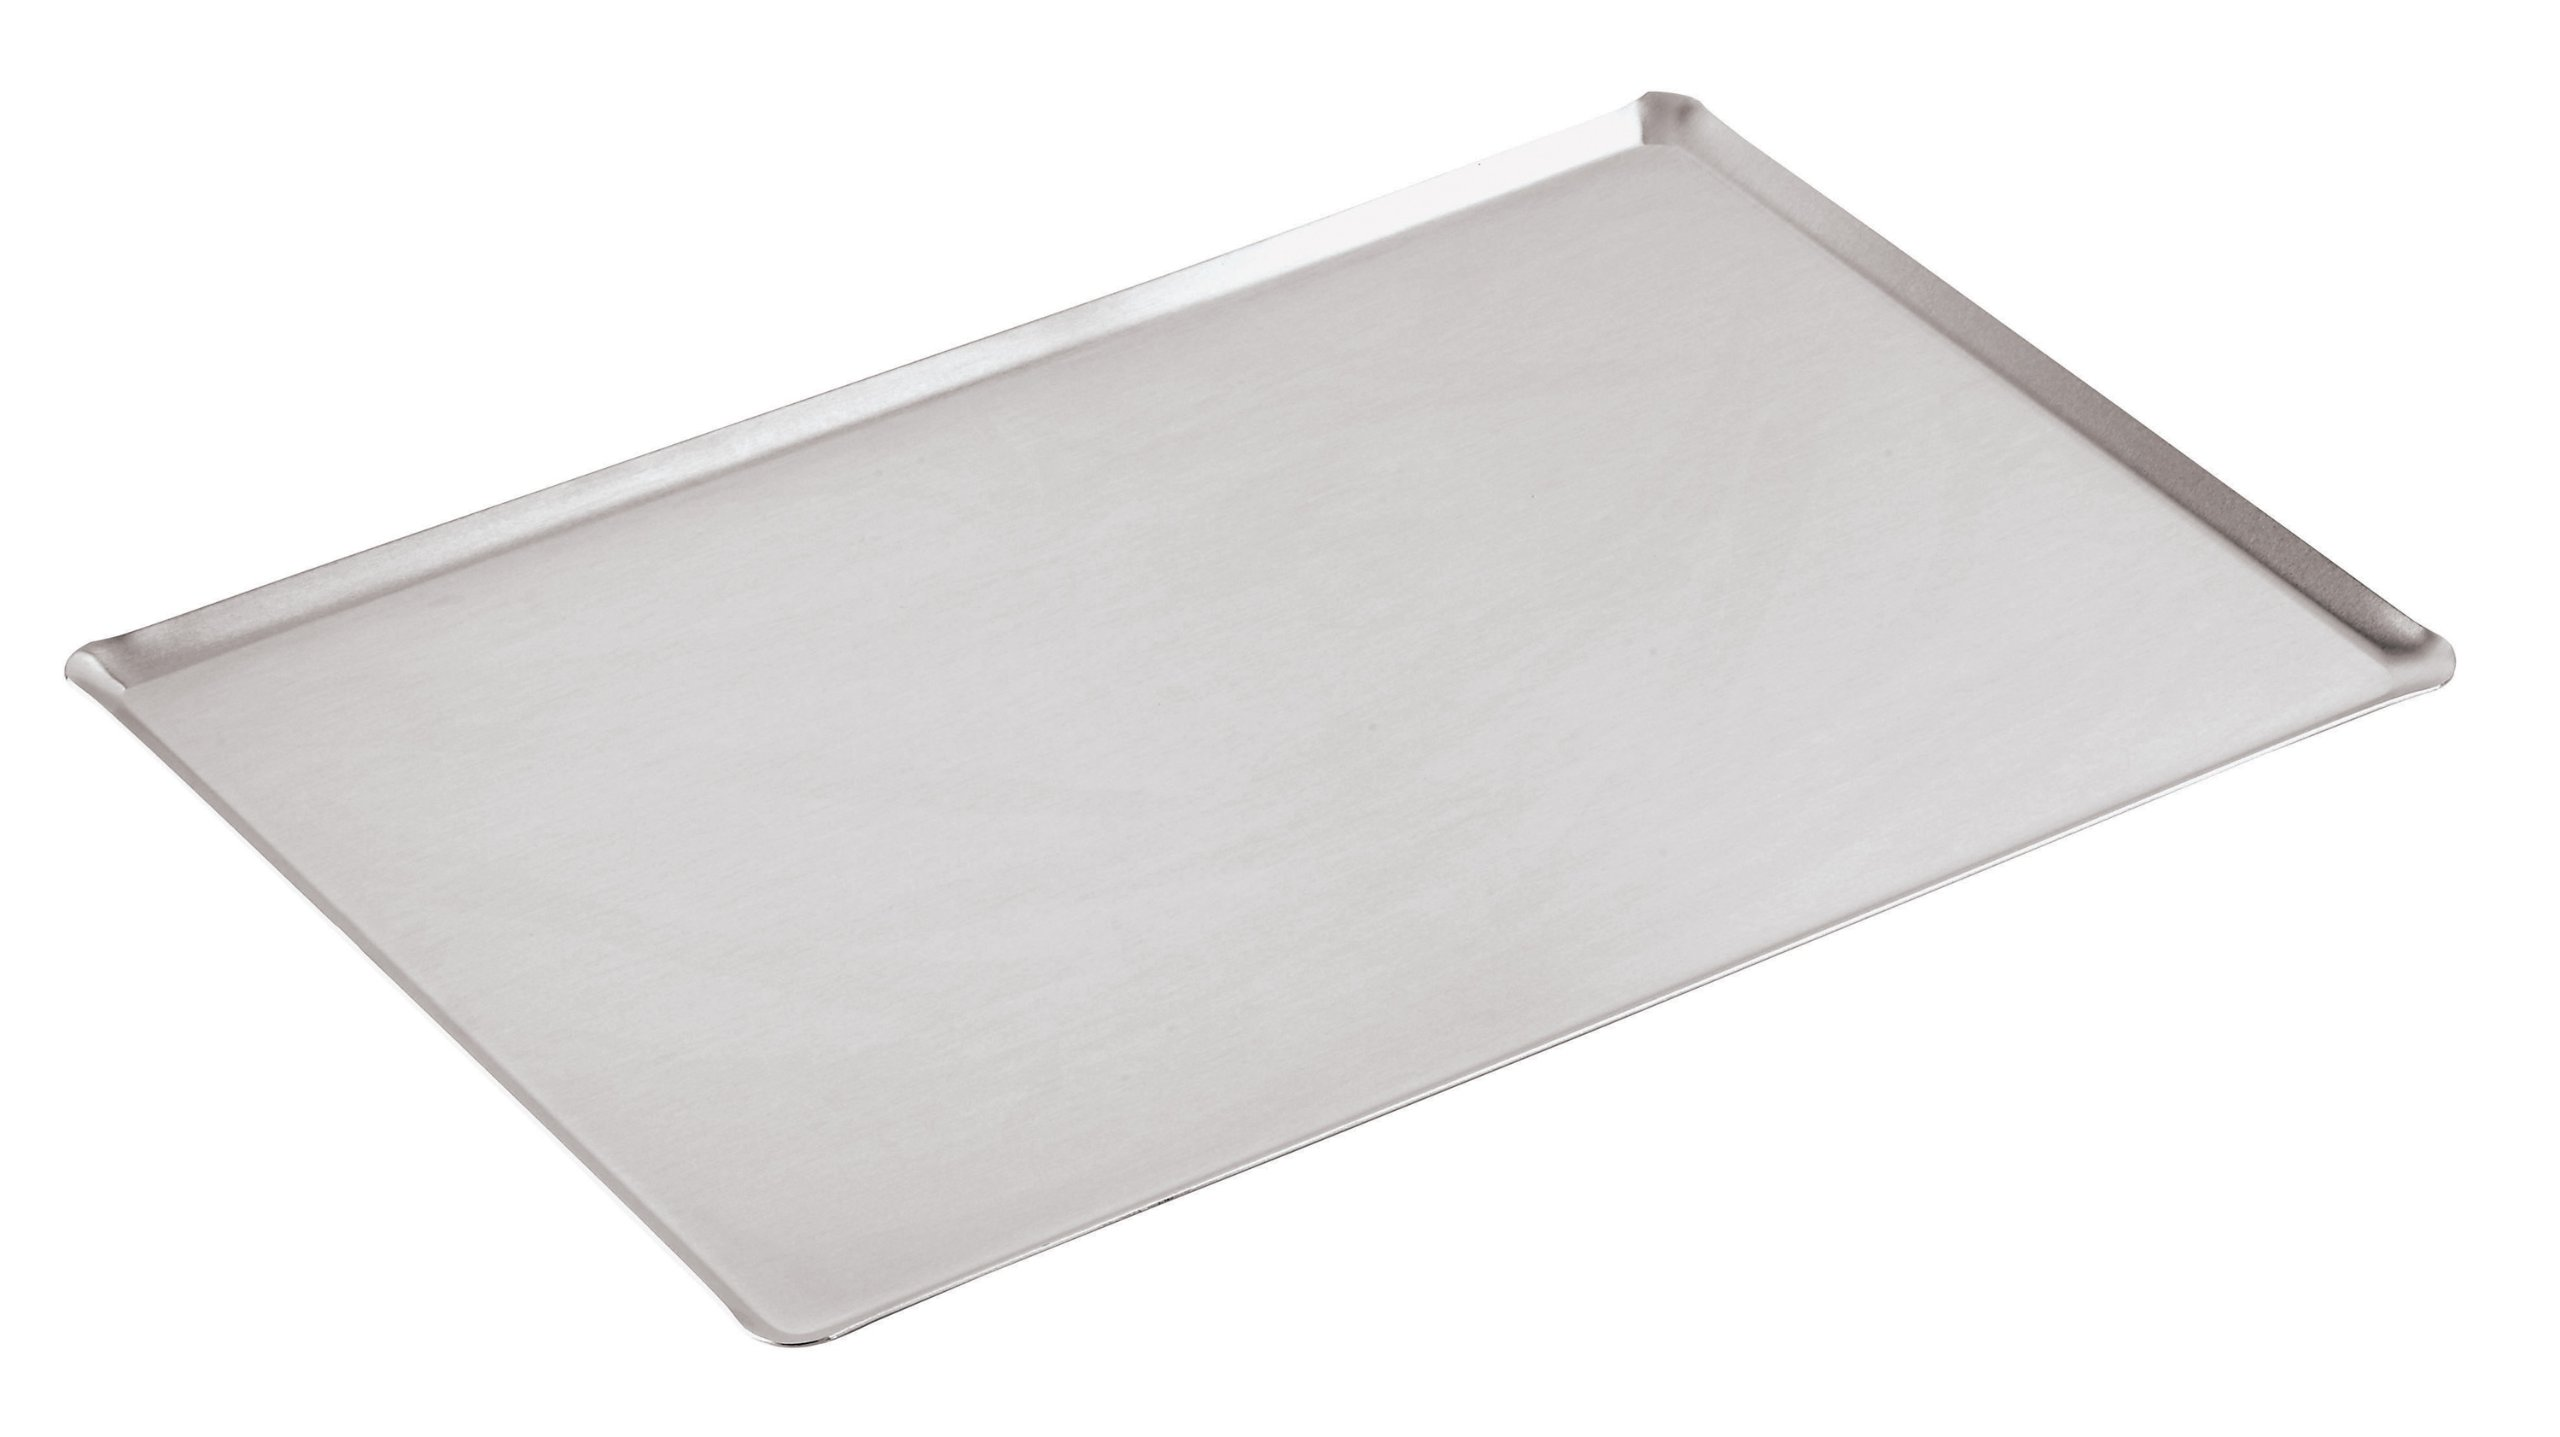 Paderno World Cuisine 20 7/8 Inch by 12 3/4 Inch Straight Sided Aluminum Baking Sheet